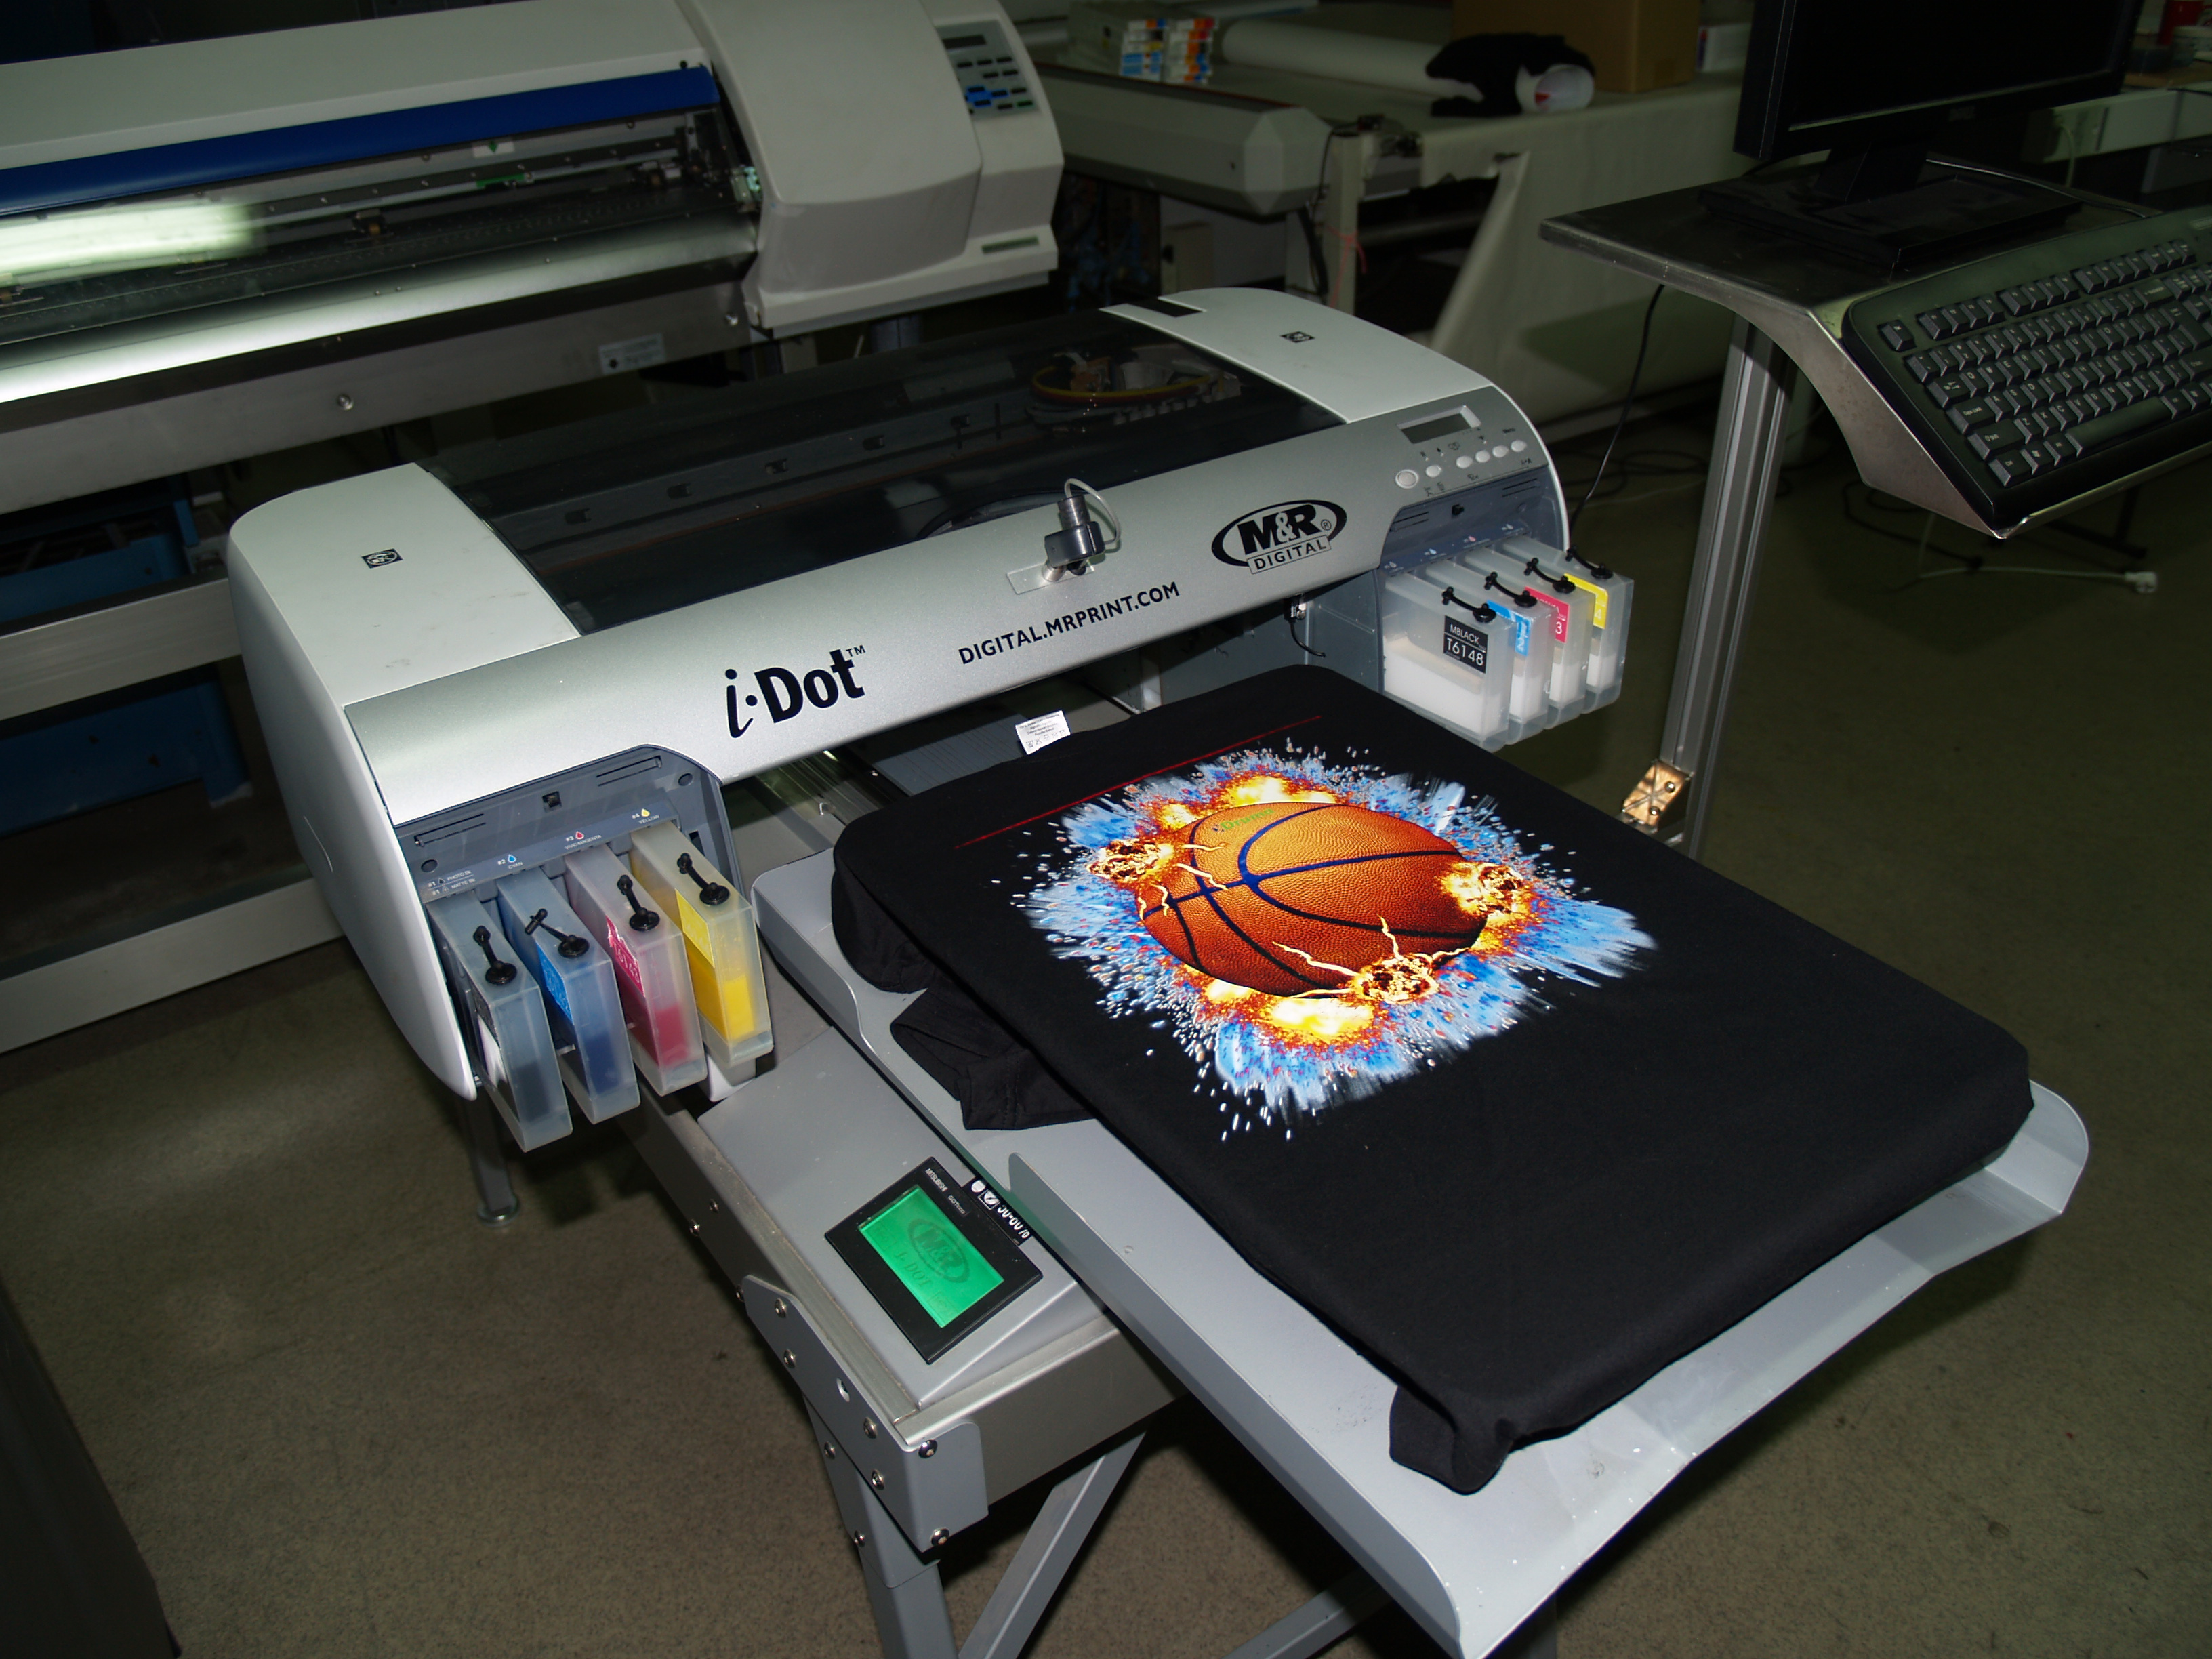 Used printer for t shirts i dot 2100 exapro for T shirt printing machines